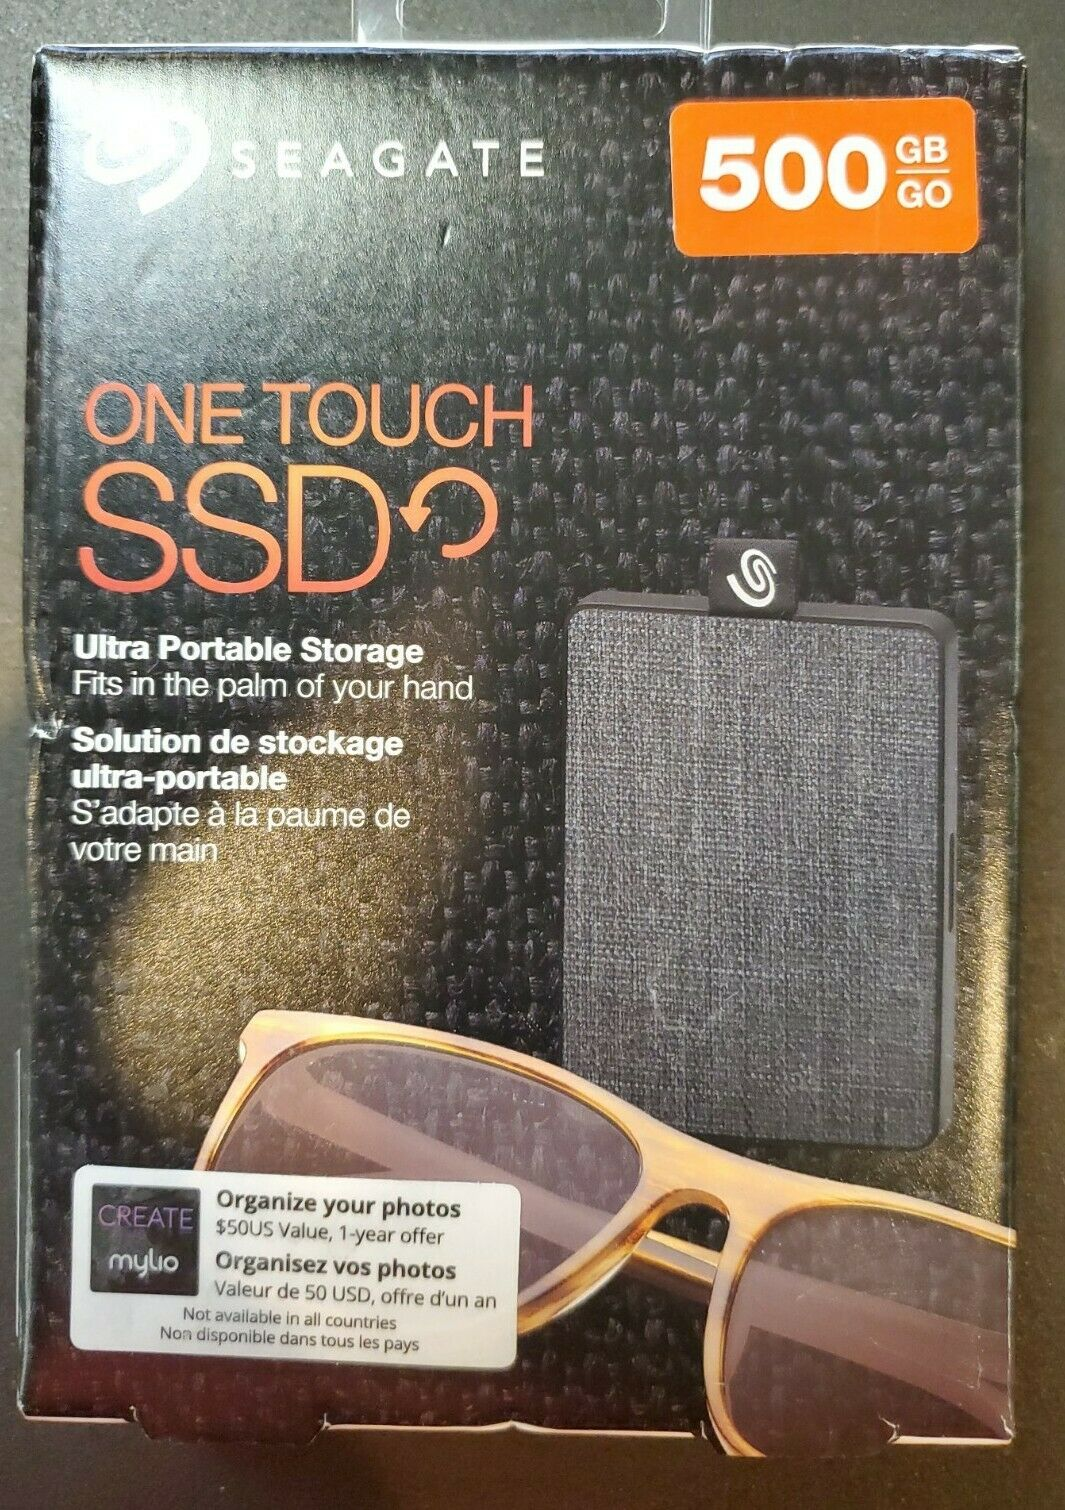 Seagate 500GB One Touch Portable SSD Solid State Drive (External - USB 3.0)New!. Buy it now for 52.00